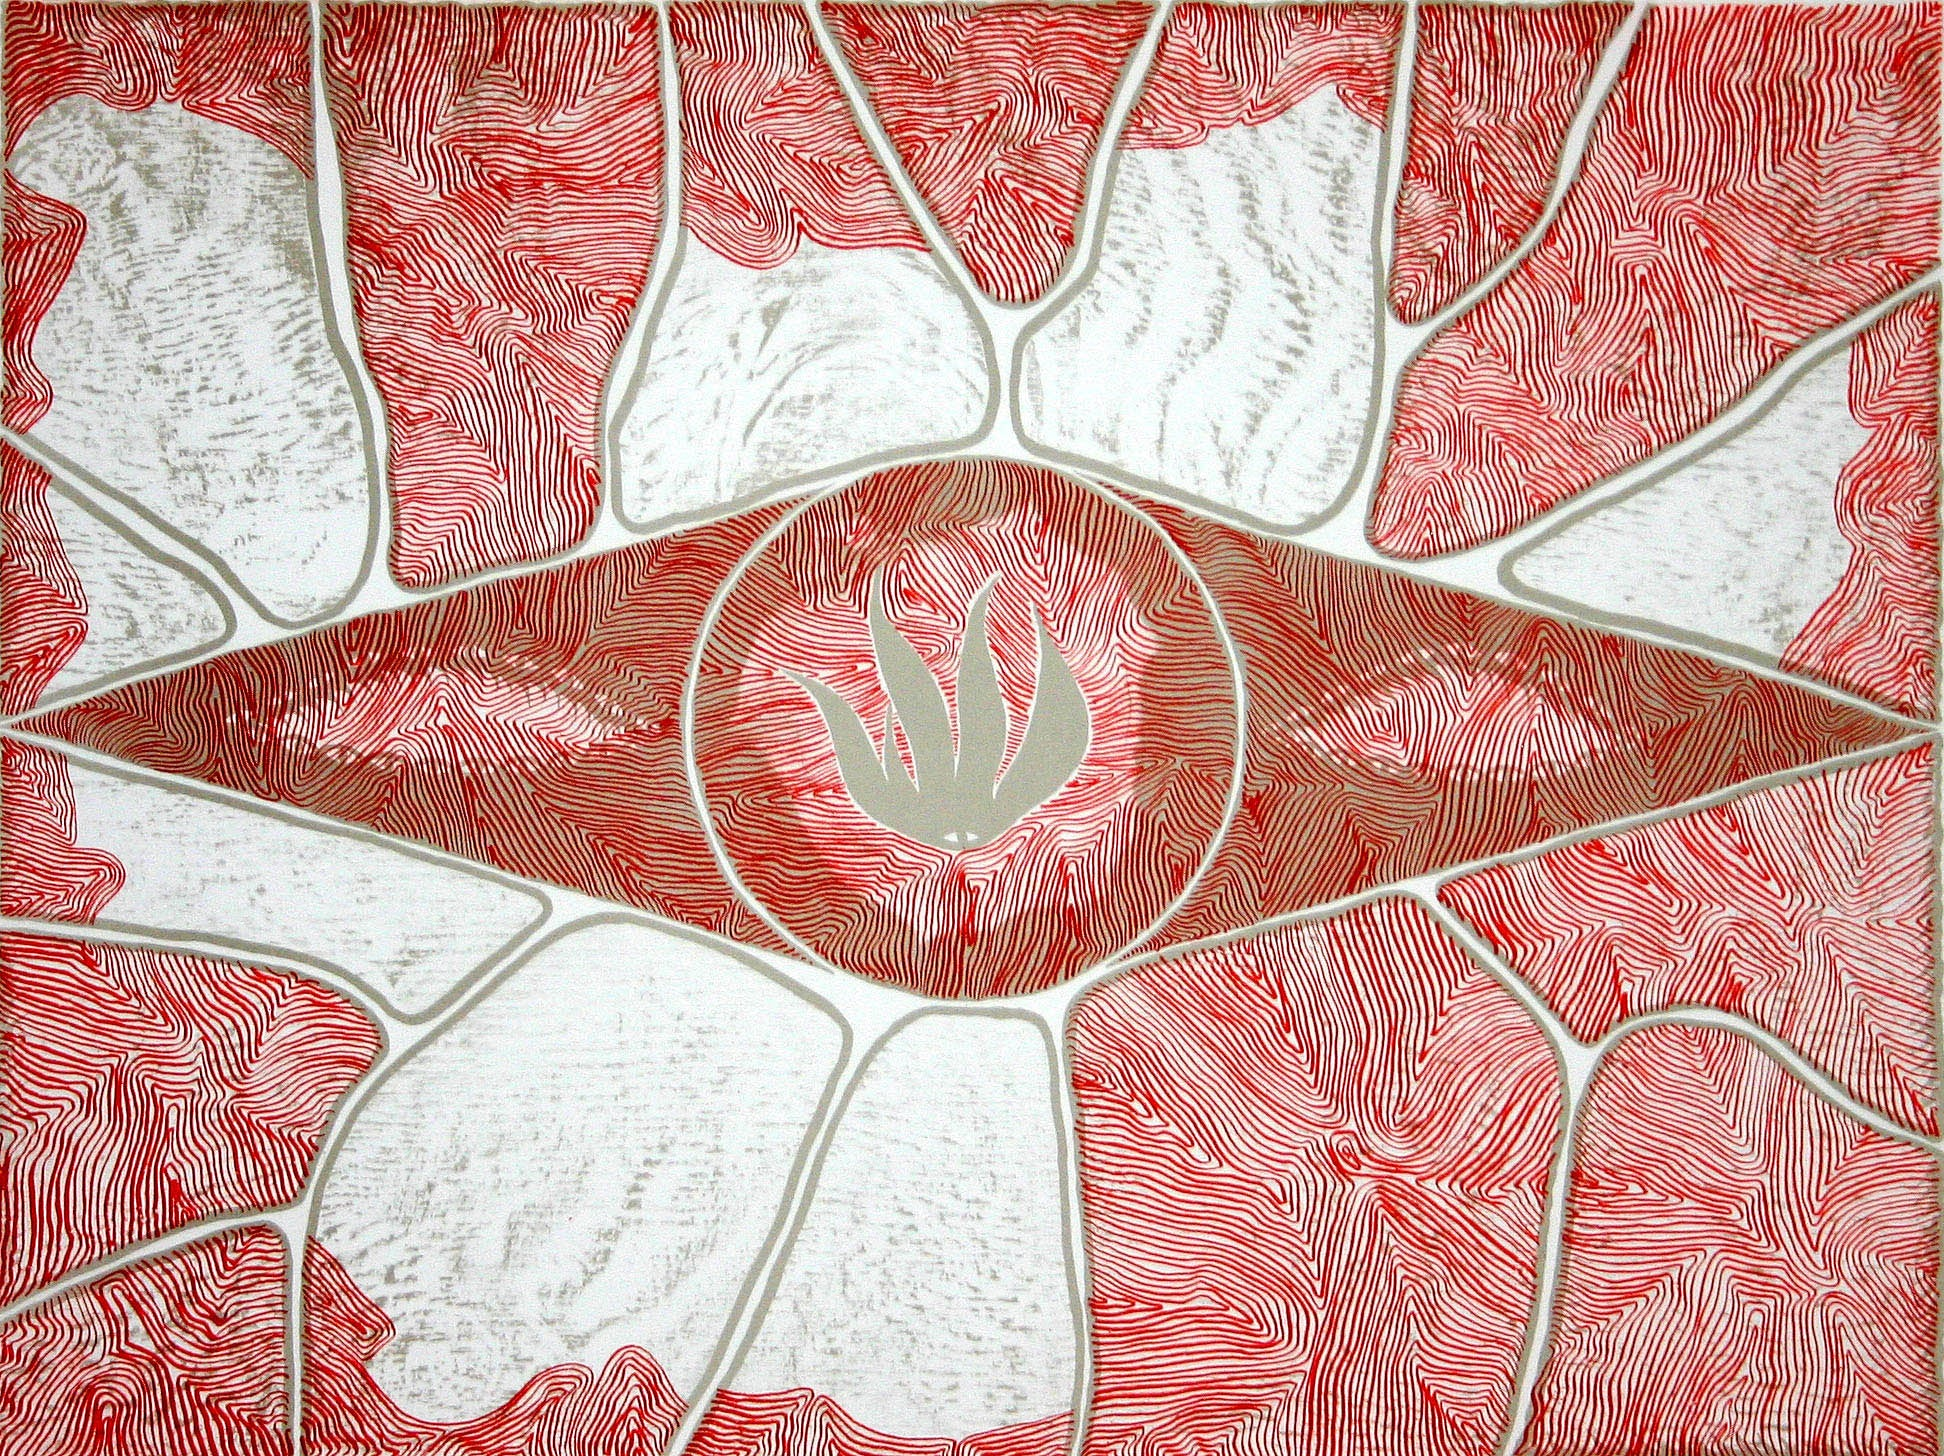 Untitled (Red & White)